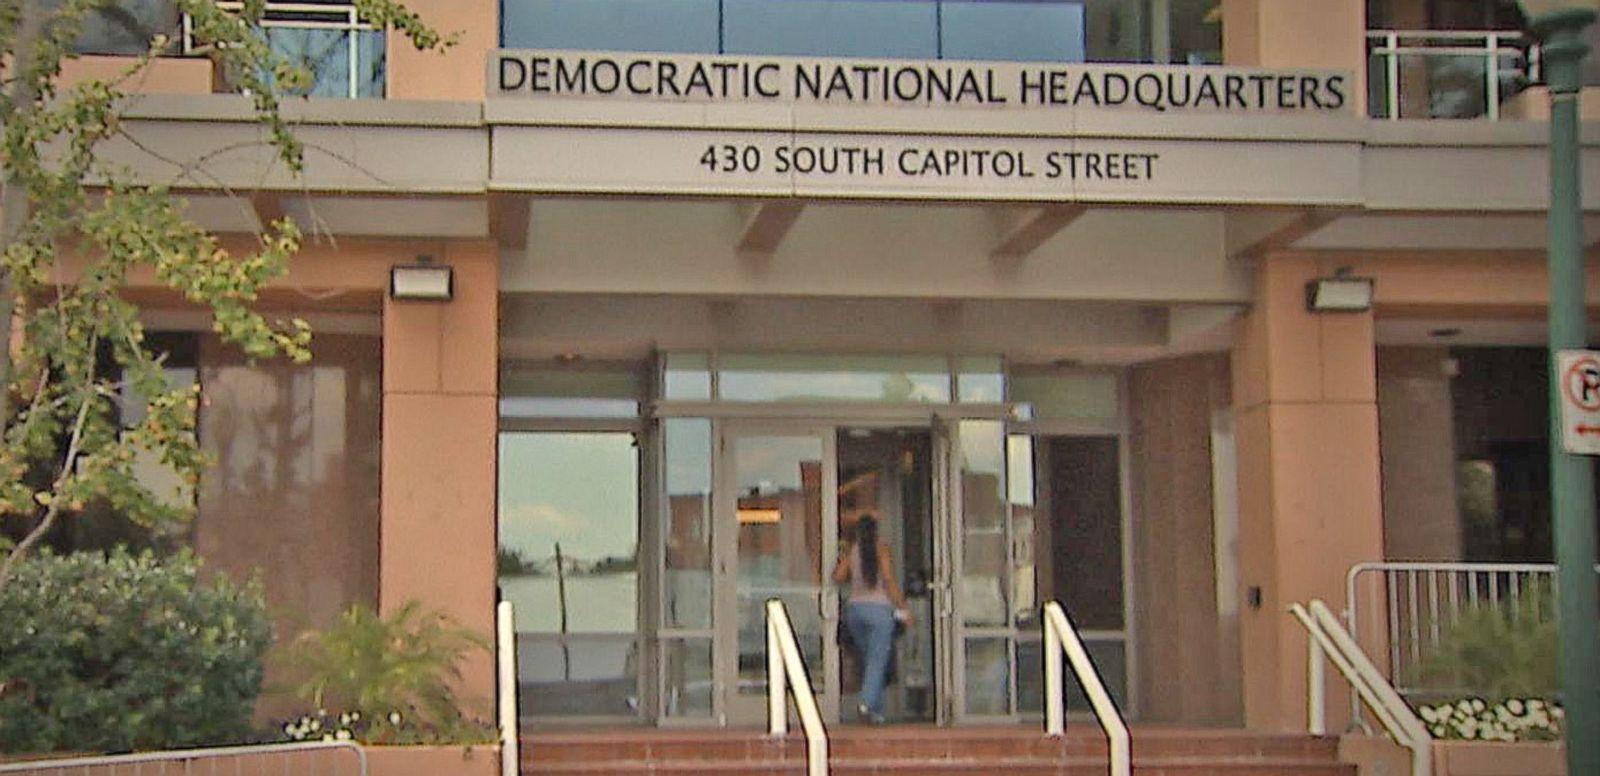 VIDEO: Who's Behind Massive DNC Email Hack?